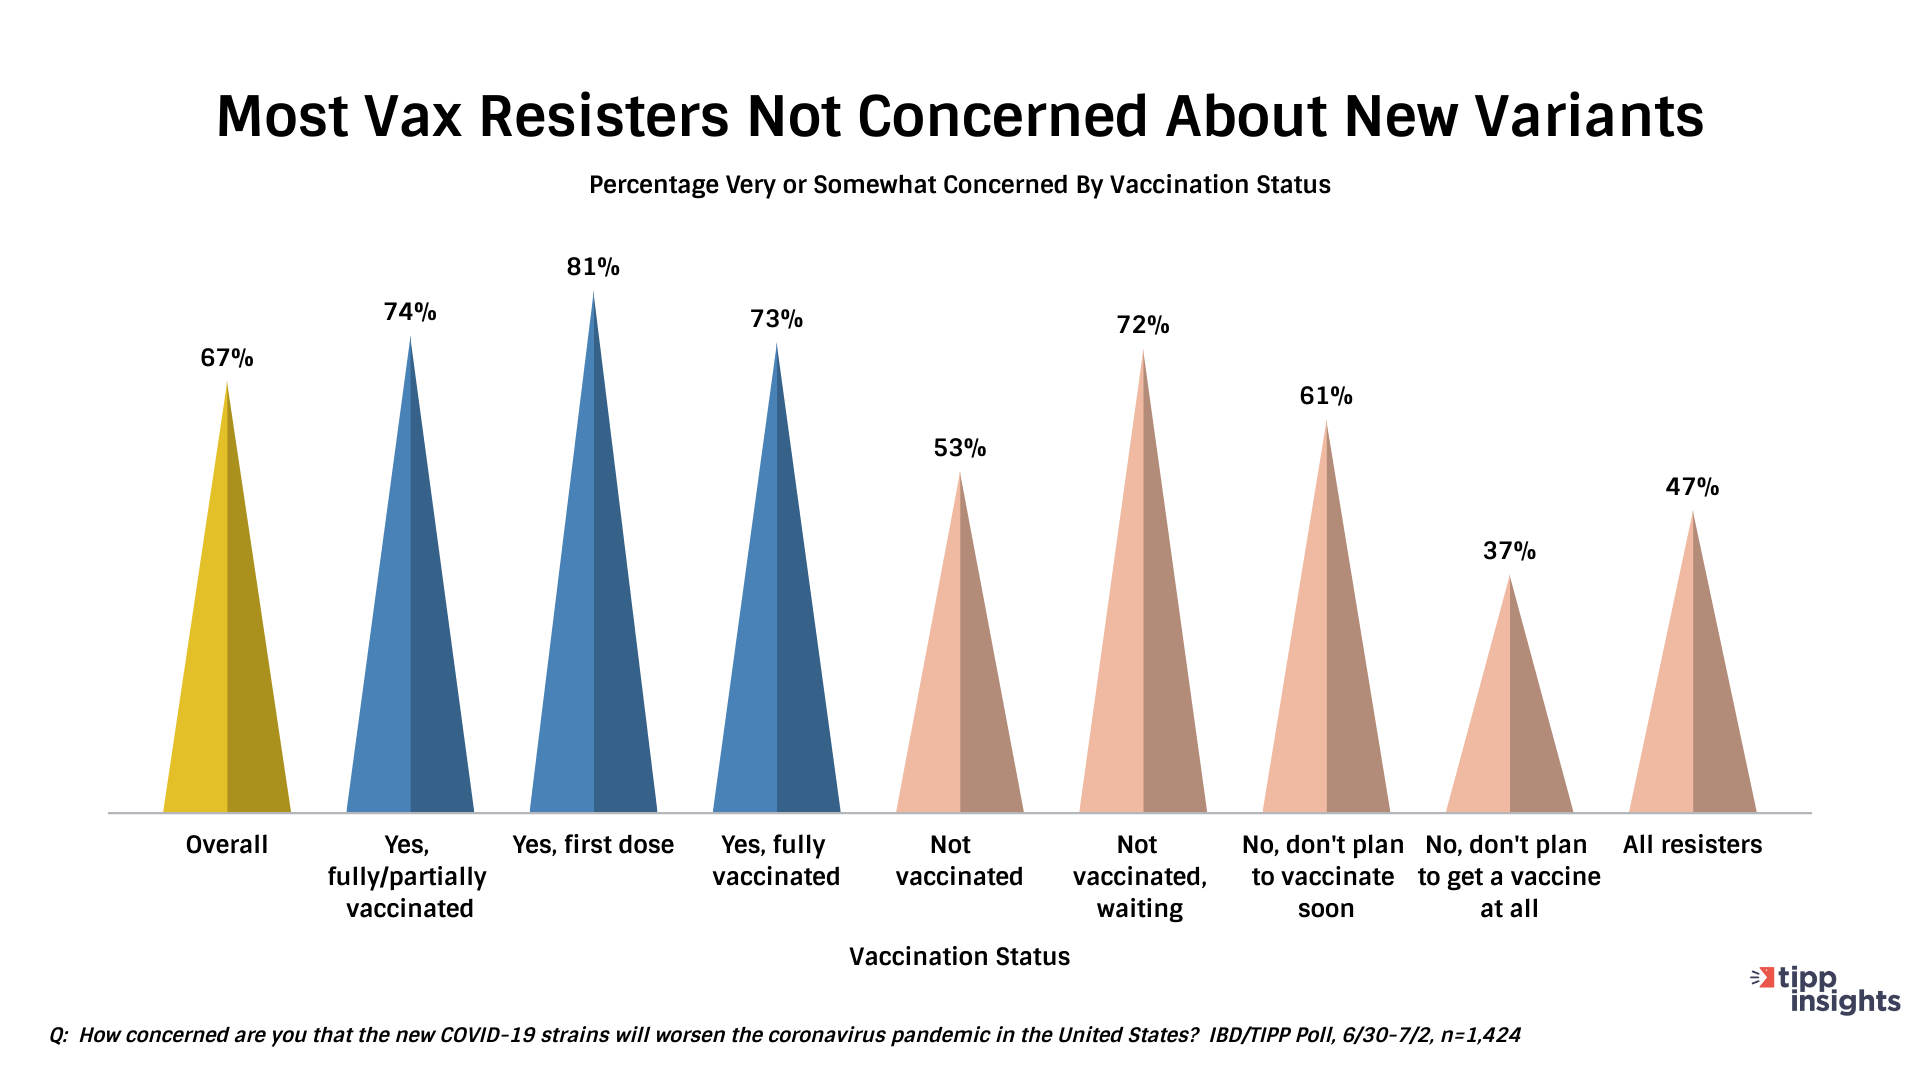 TIPP Poll Results, American Vax Resisters not concerned about new COVID19 variants